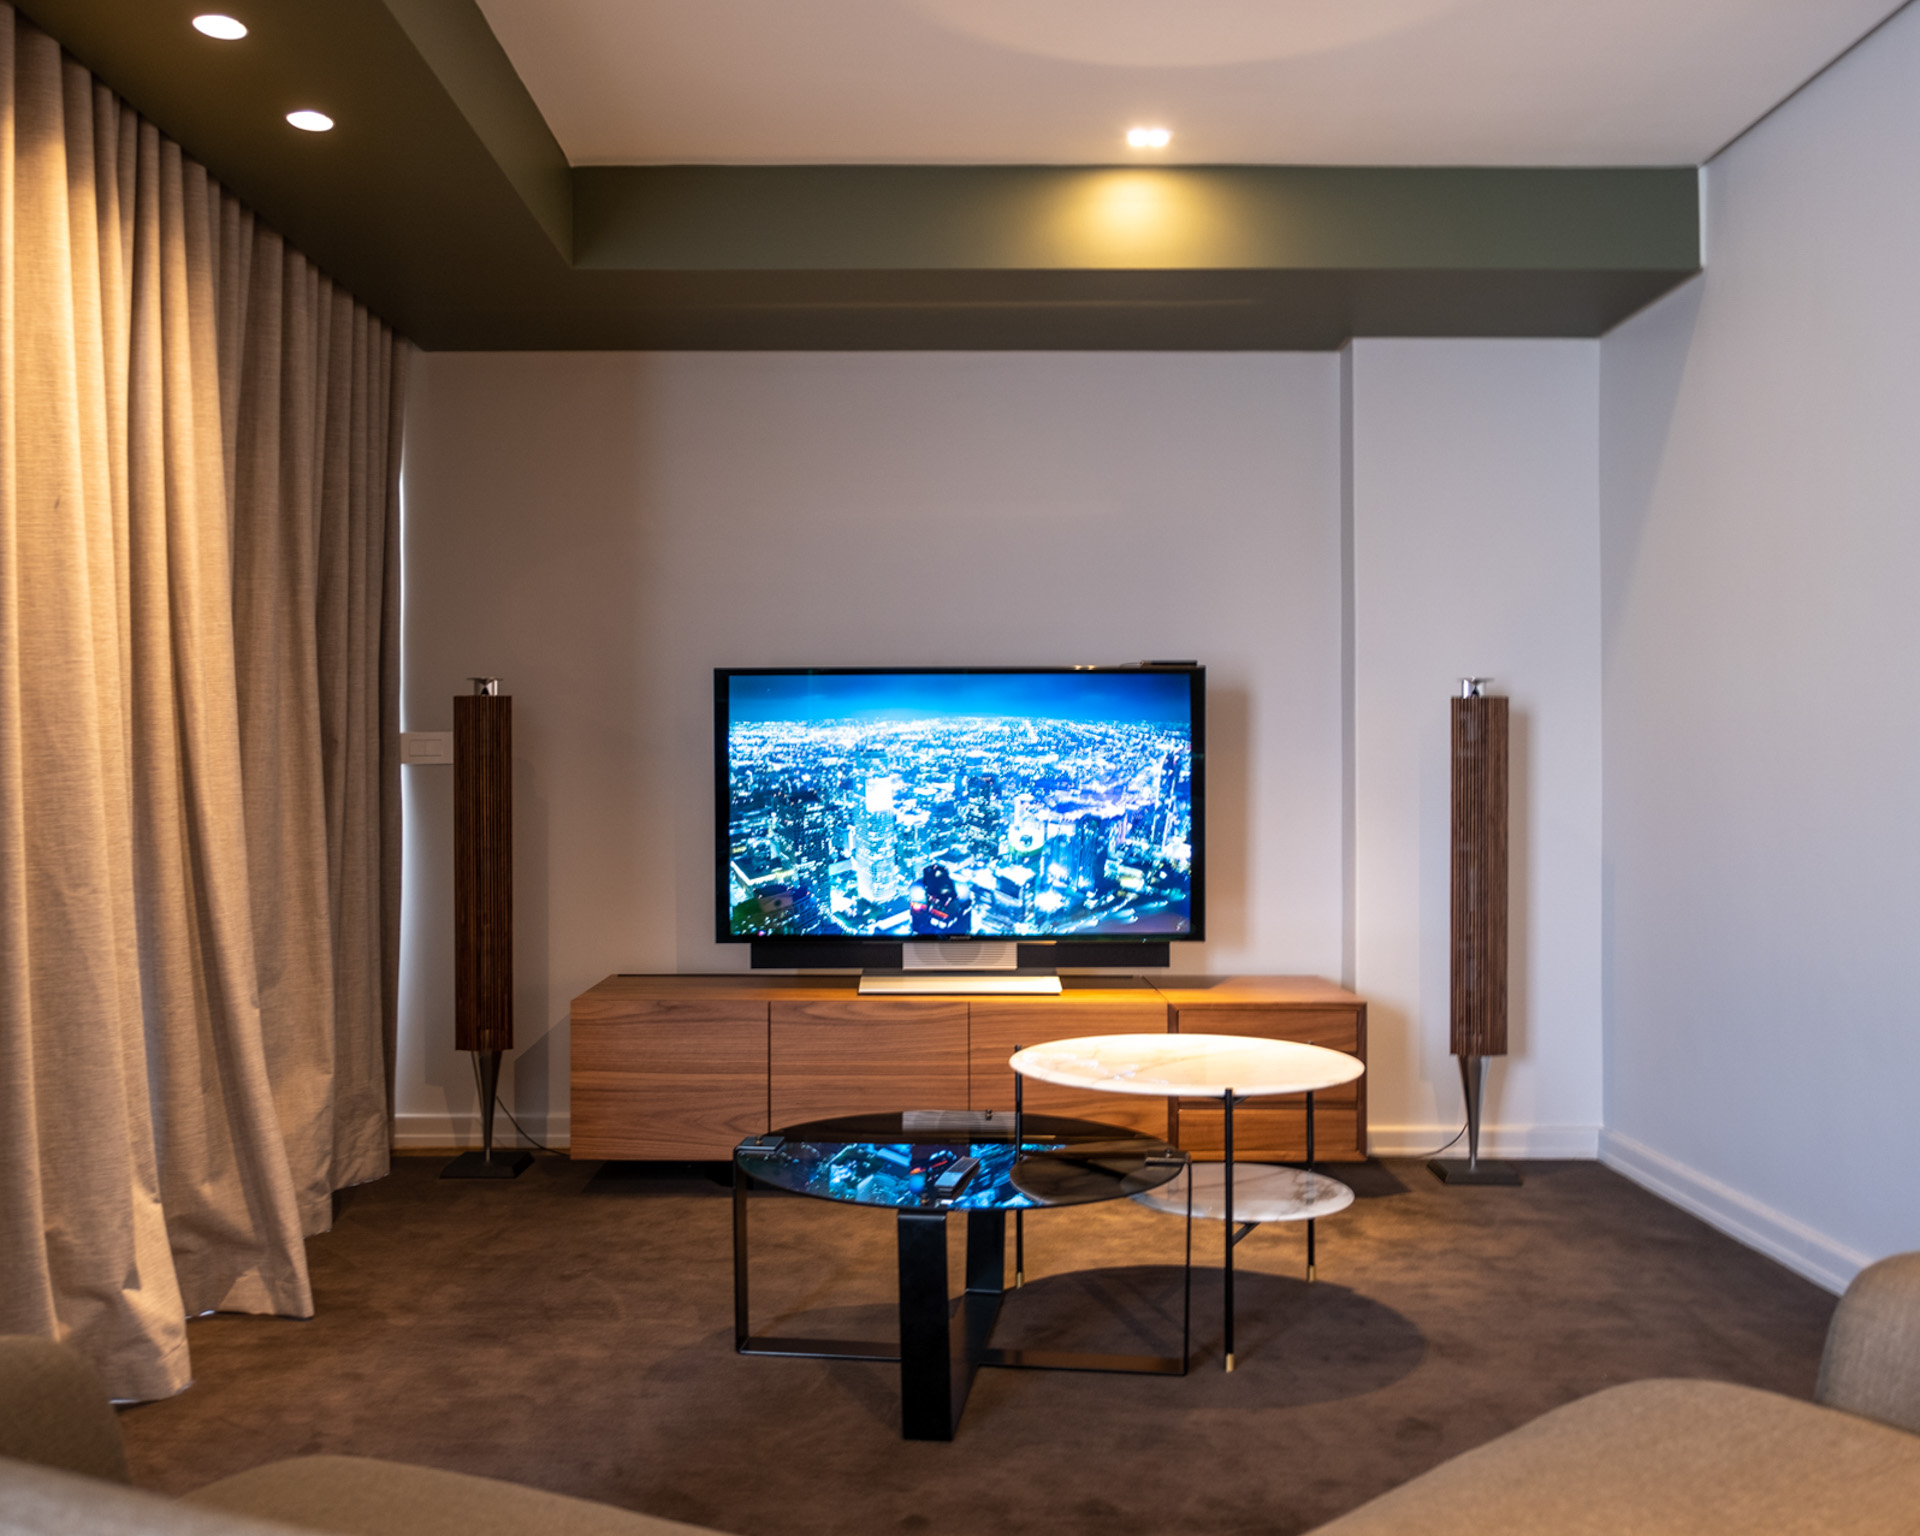 BeoVision Avant television installed onto cabinet with BeoLab 18 floor standing hifi speakers